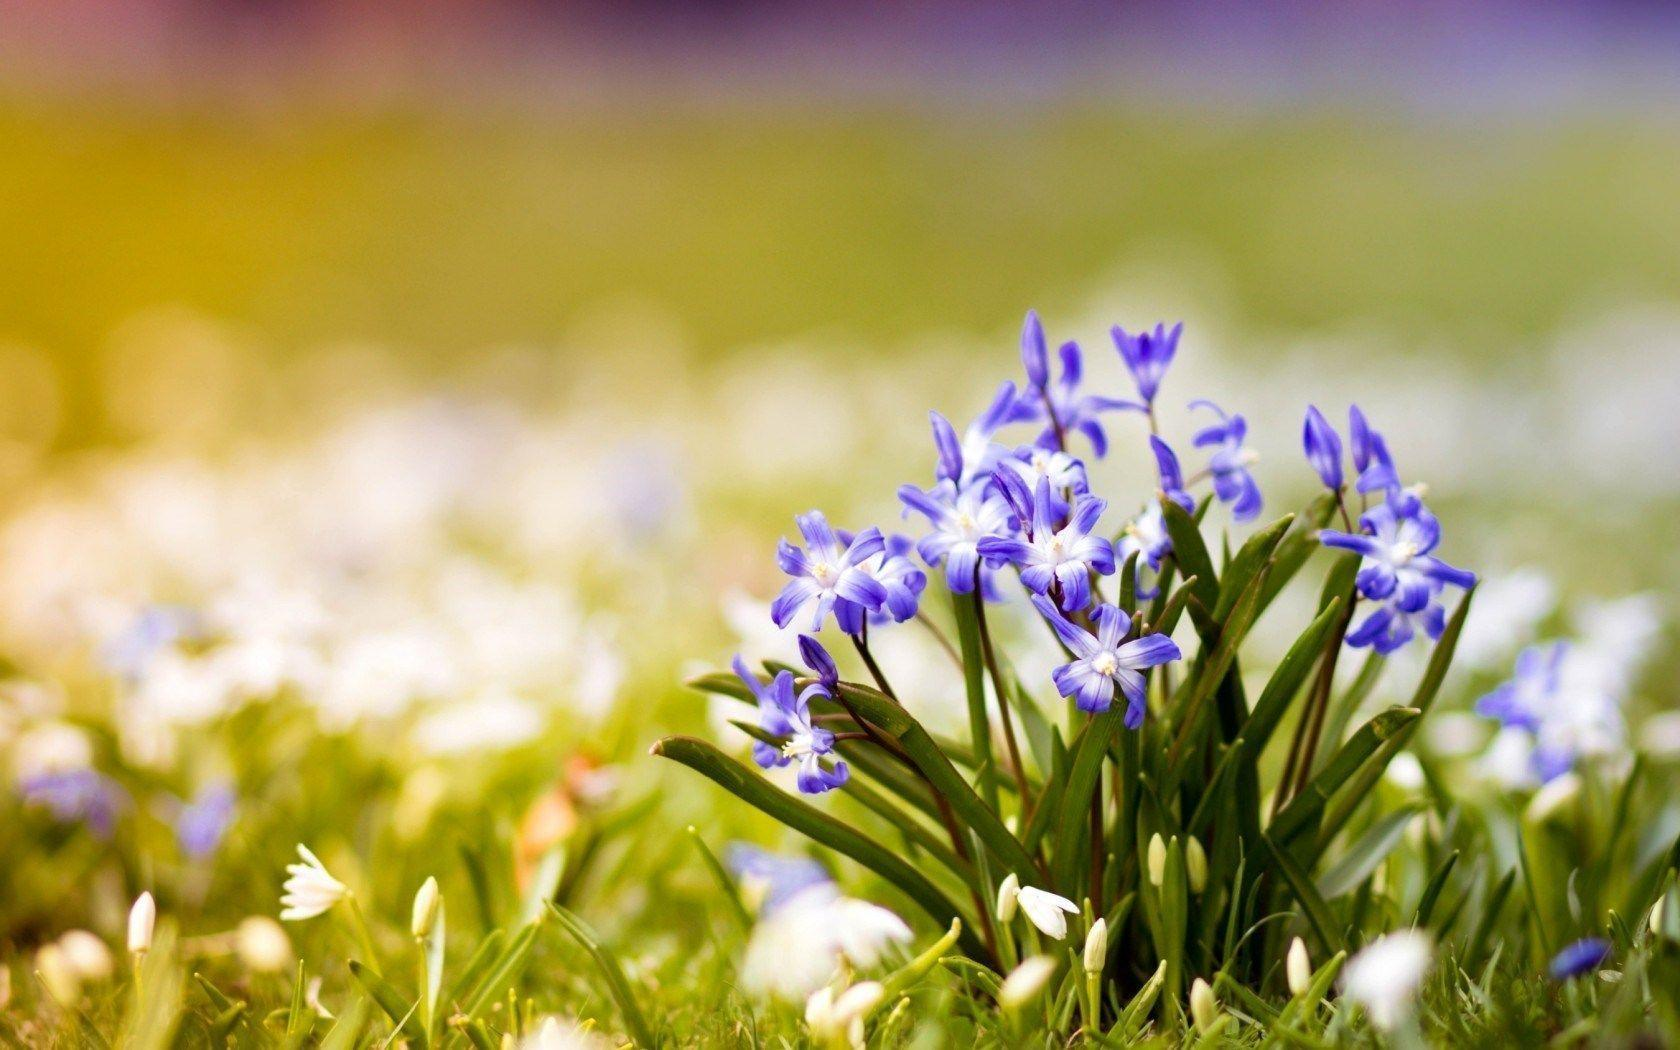 Spring Nature Wallpapers - Wallpaper Cave